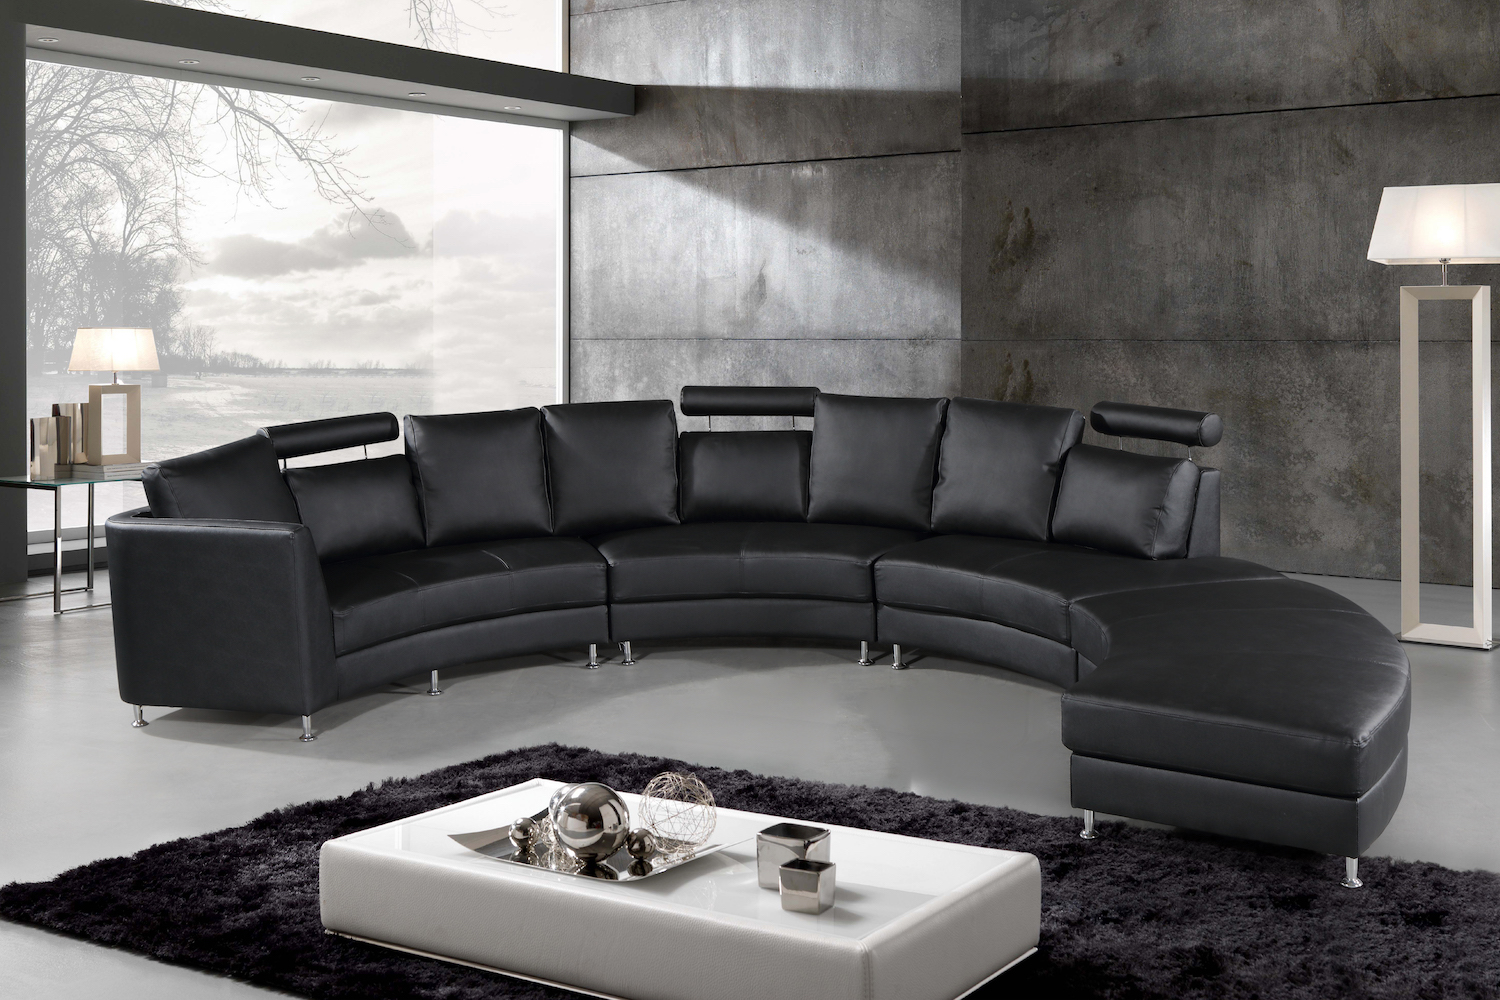 Italian Design Circular Sofa Black Leather